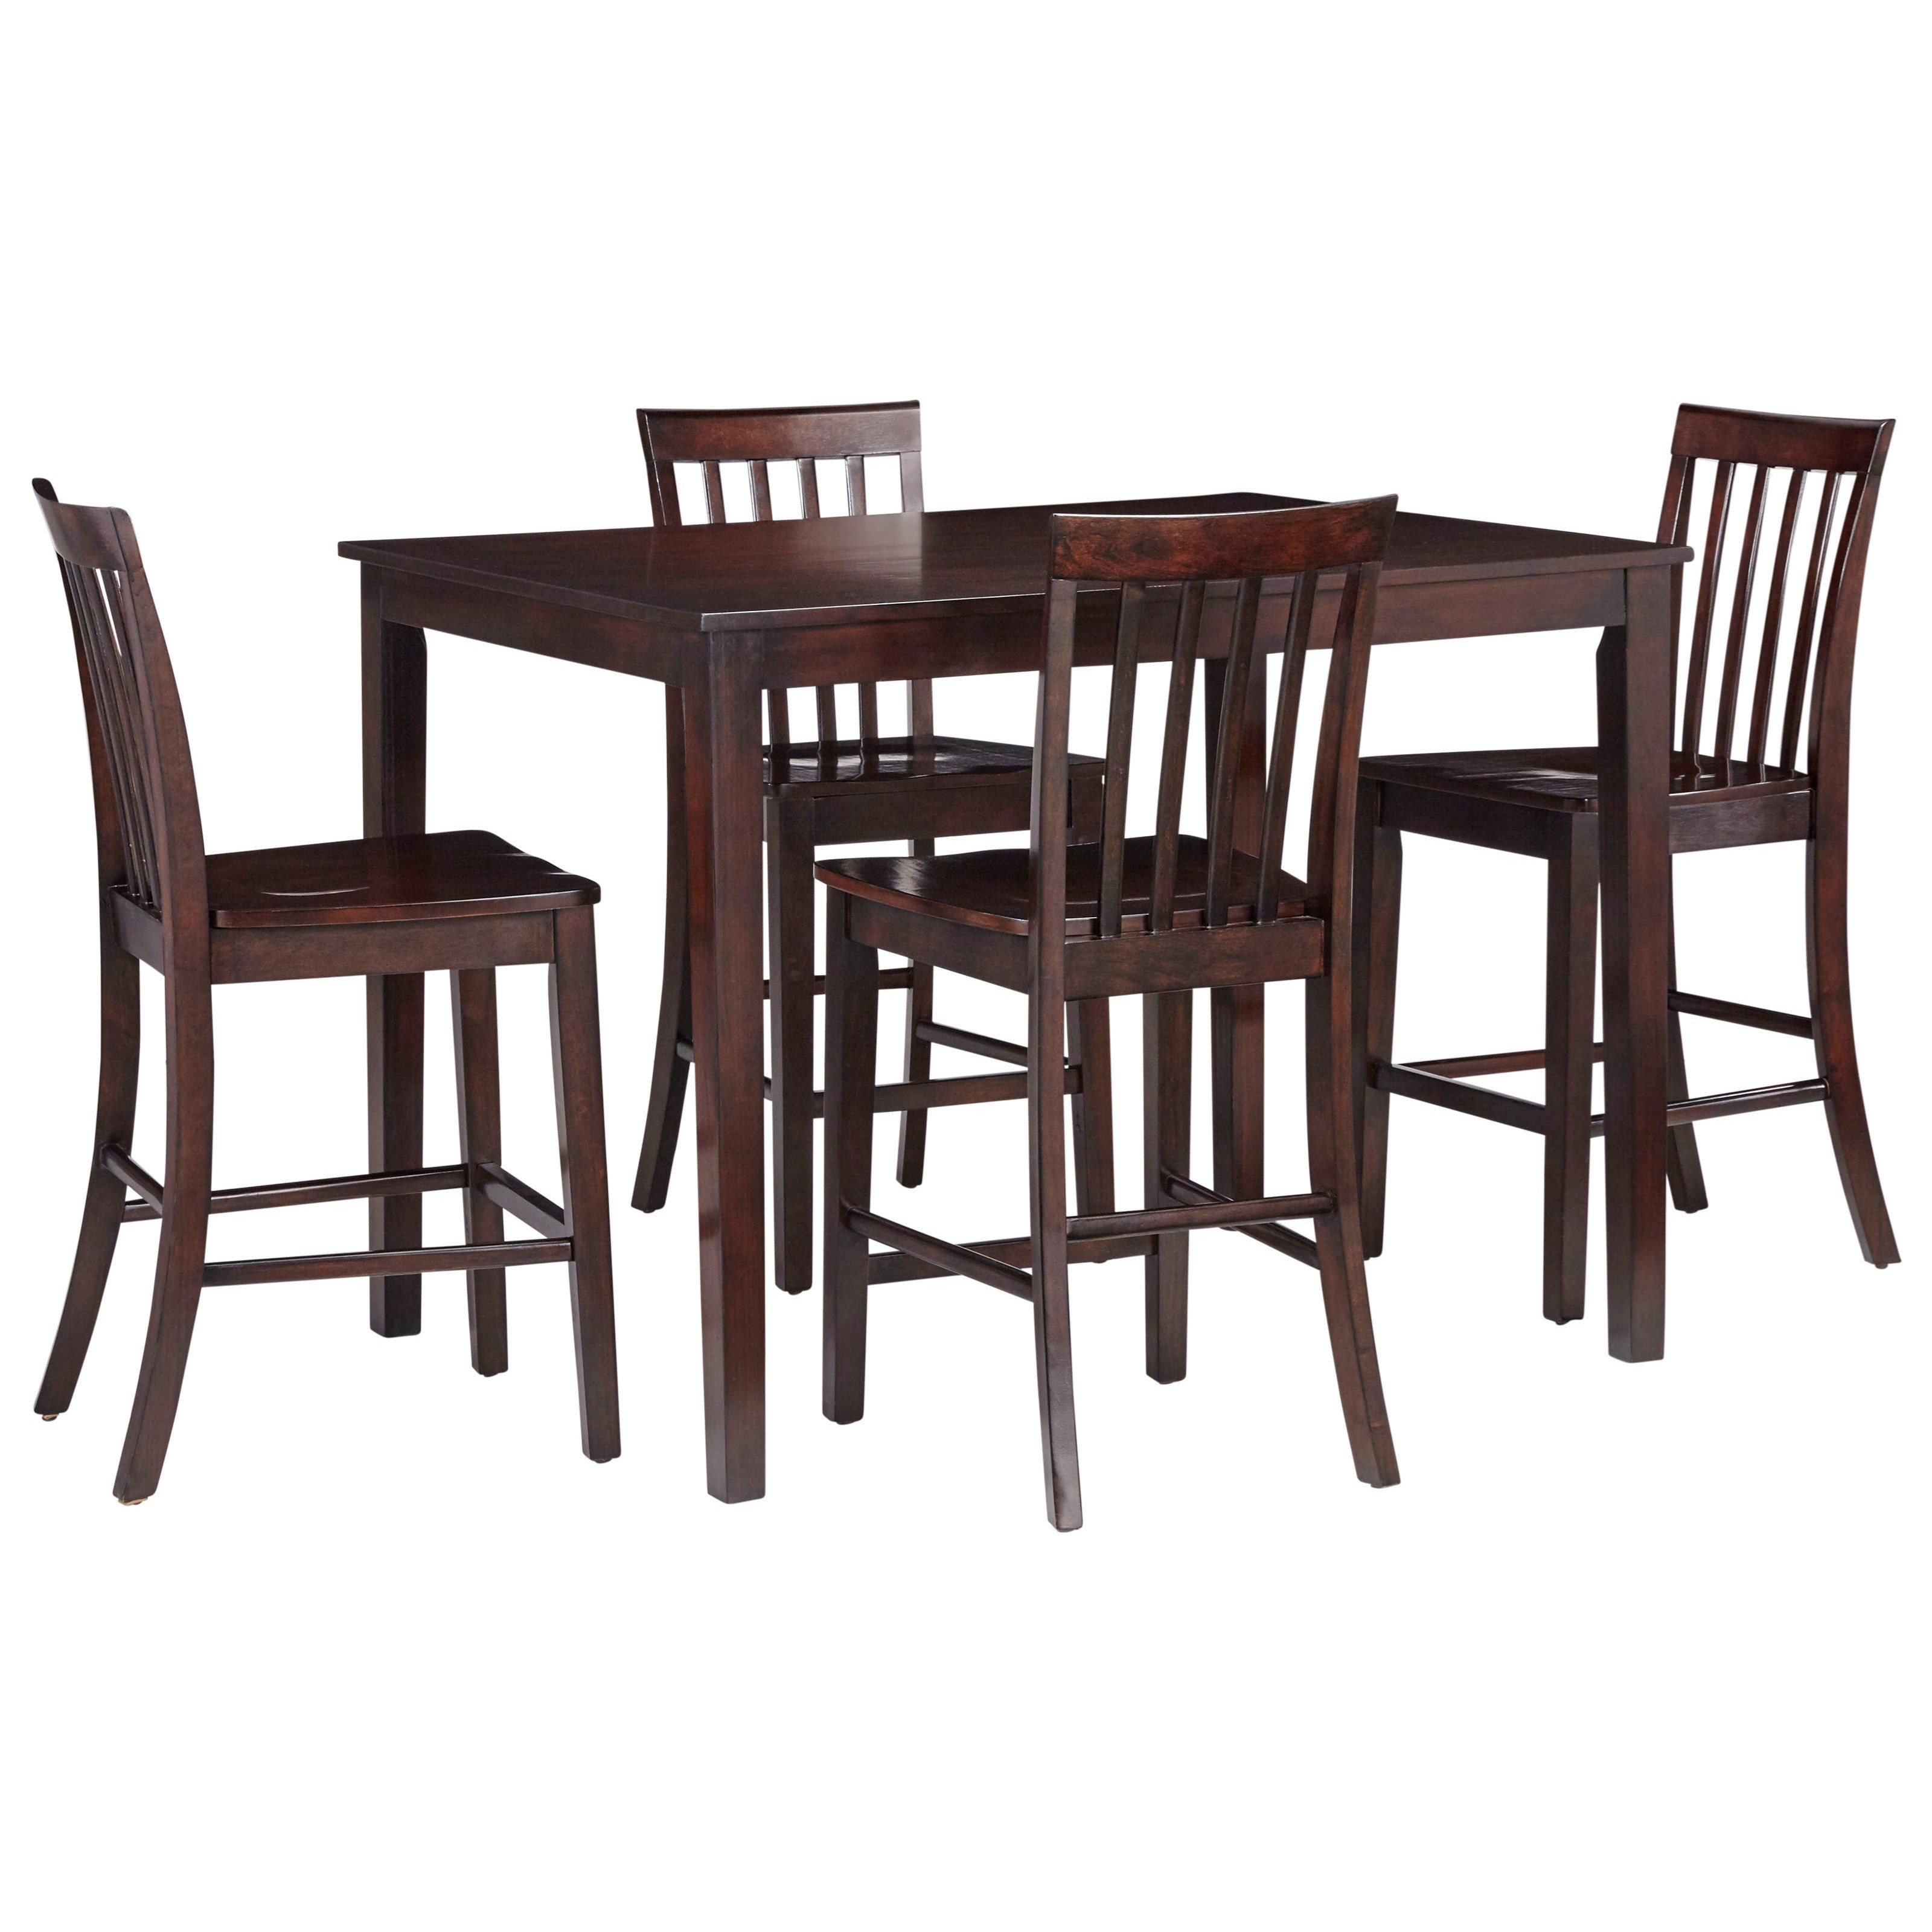 Magnificent Stanton Casual Counter Height Dining Table With Four Chairs By Standard Furniture At Standard Furniture Interior Design Ideas Clesiryabchikinfo